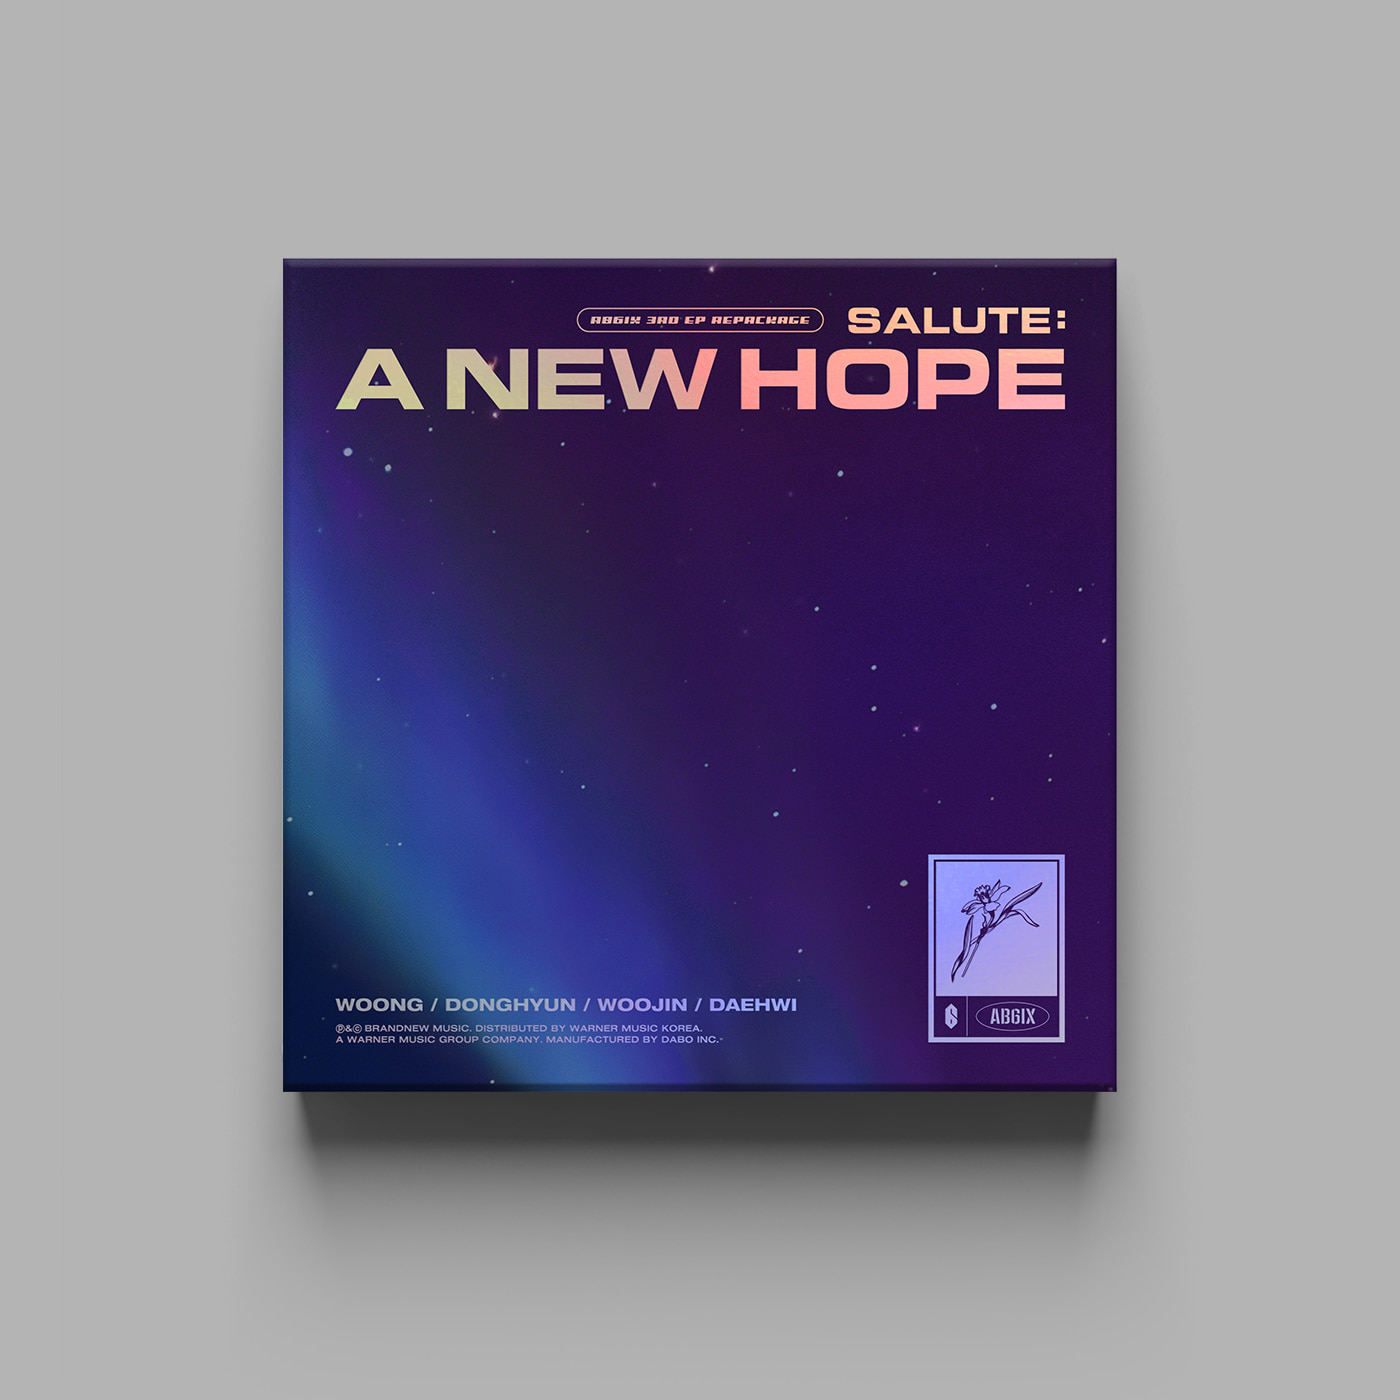 AB6IX - 3RD EP REPACKAGE [SALUTE : A NEW HOPE] (HOPE Ver.)케이팝스토어(kpop store)